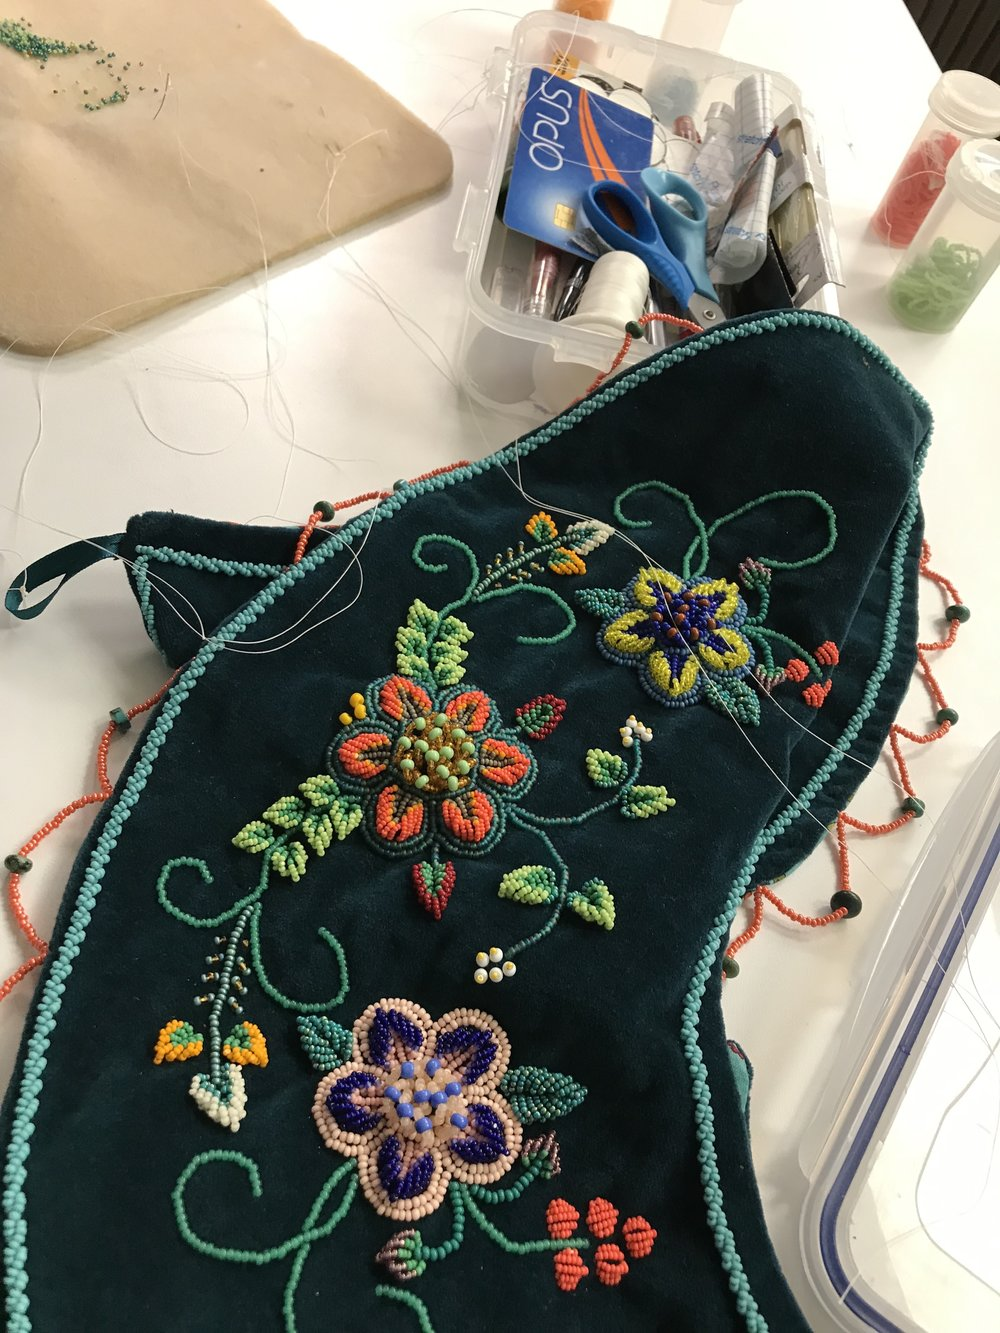 This is a beautiful beaded yoke that Brooke made!